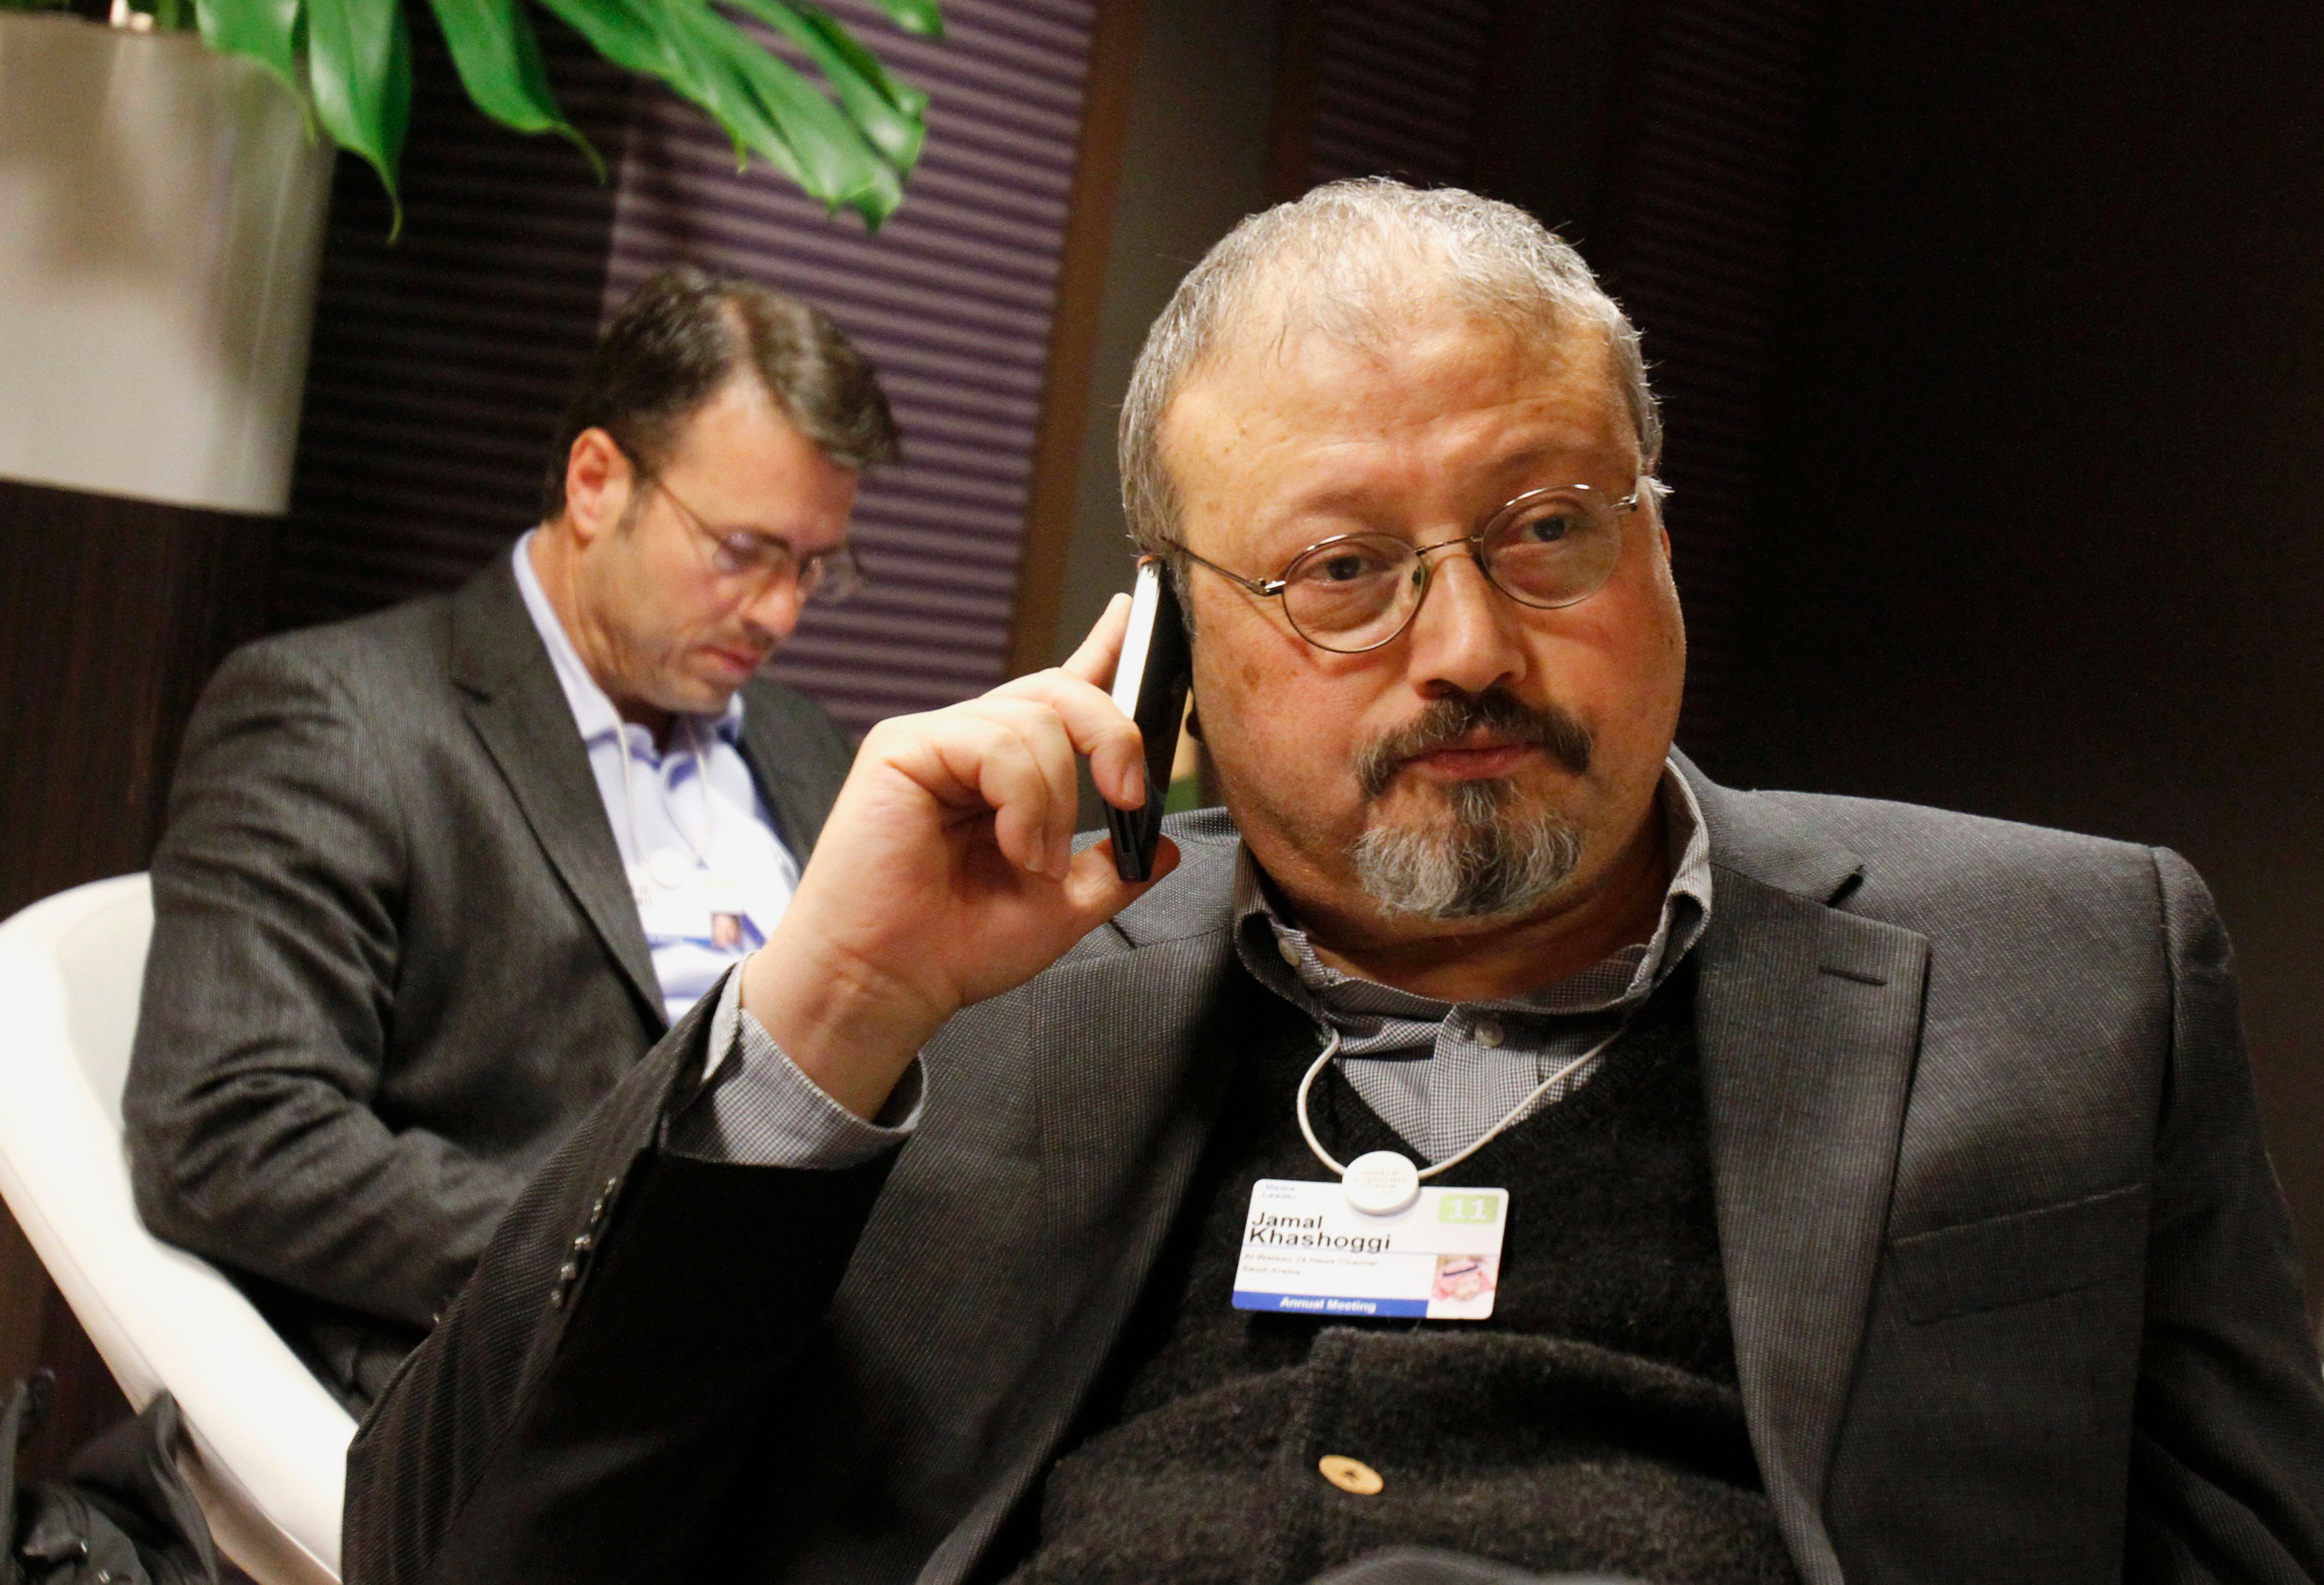 Saudi Prosecutor Seeks Death Penalty In Khashoggi Murder